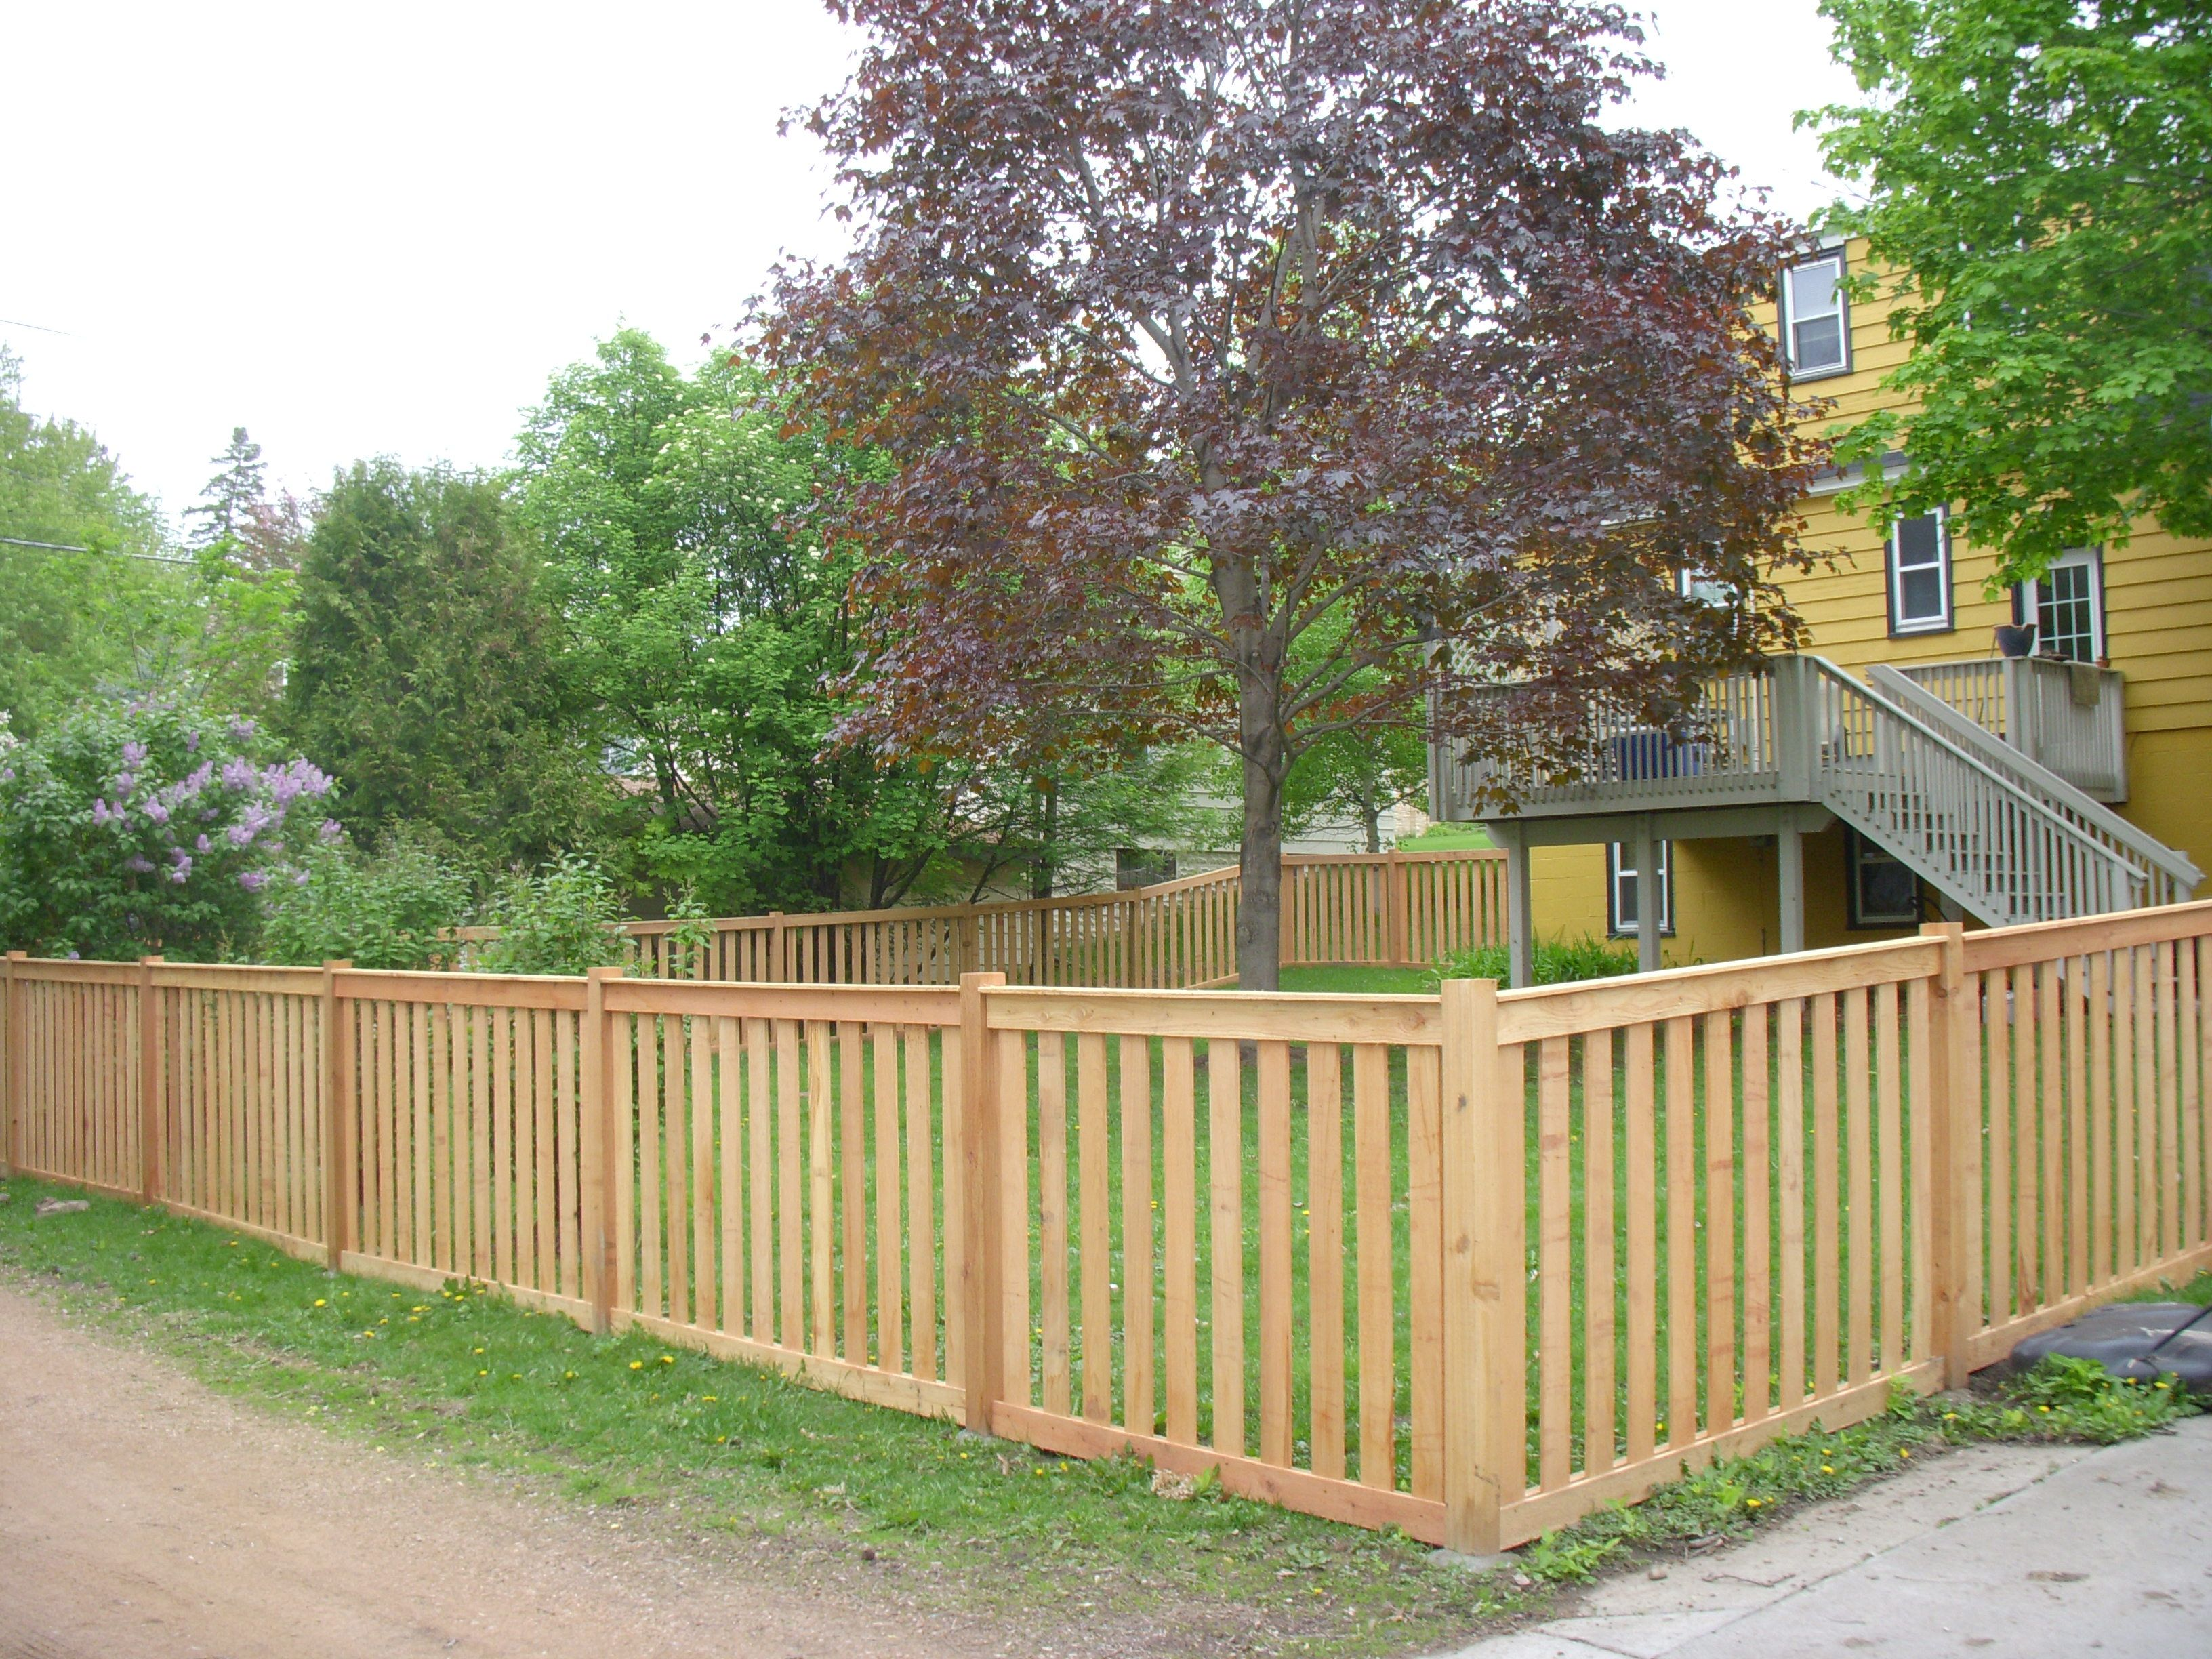 4 Ft High Wood Fence Panels Posten Huis